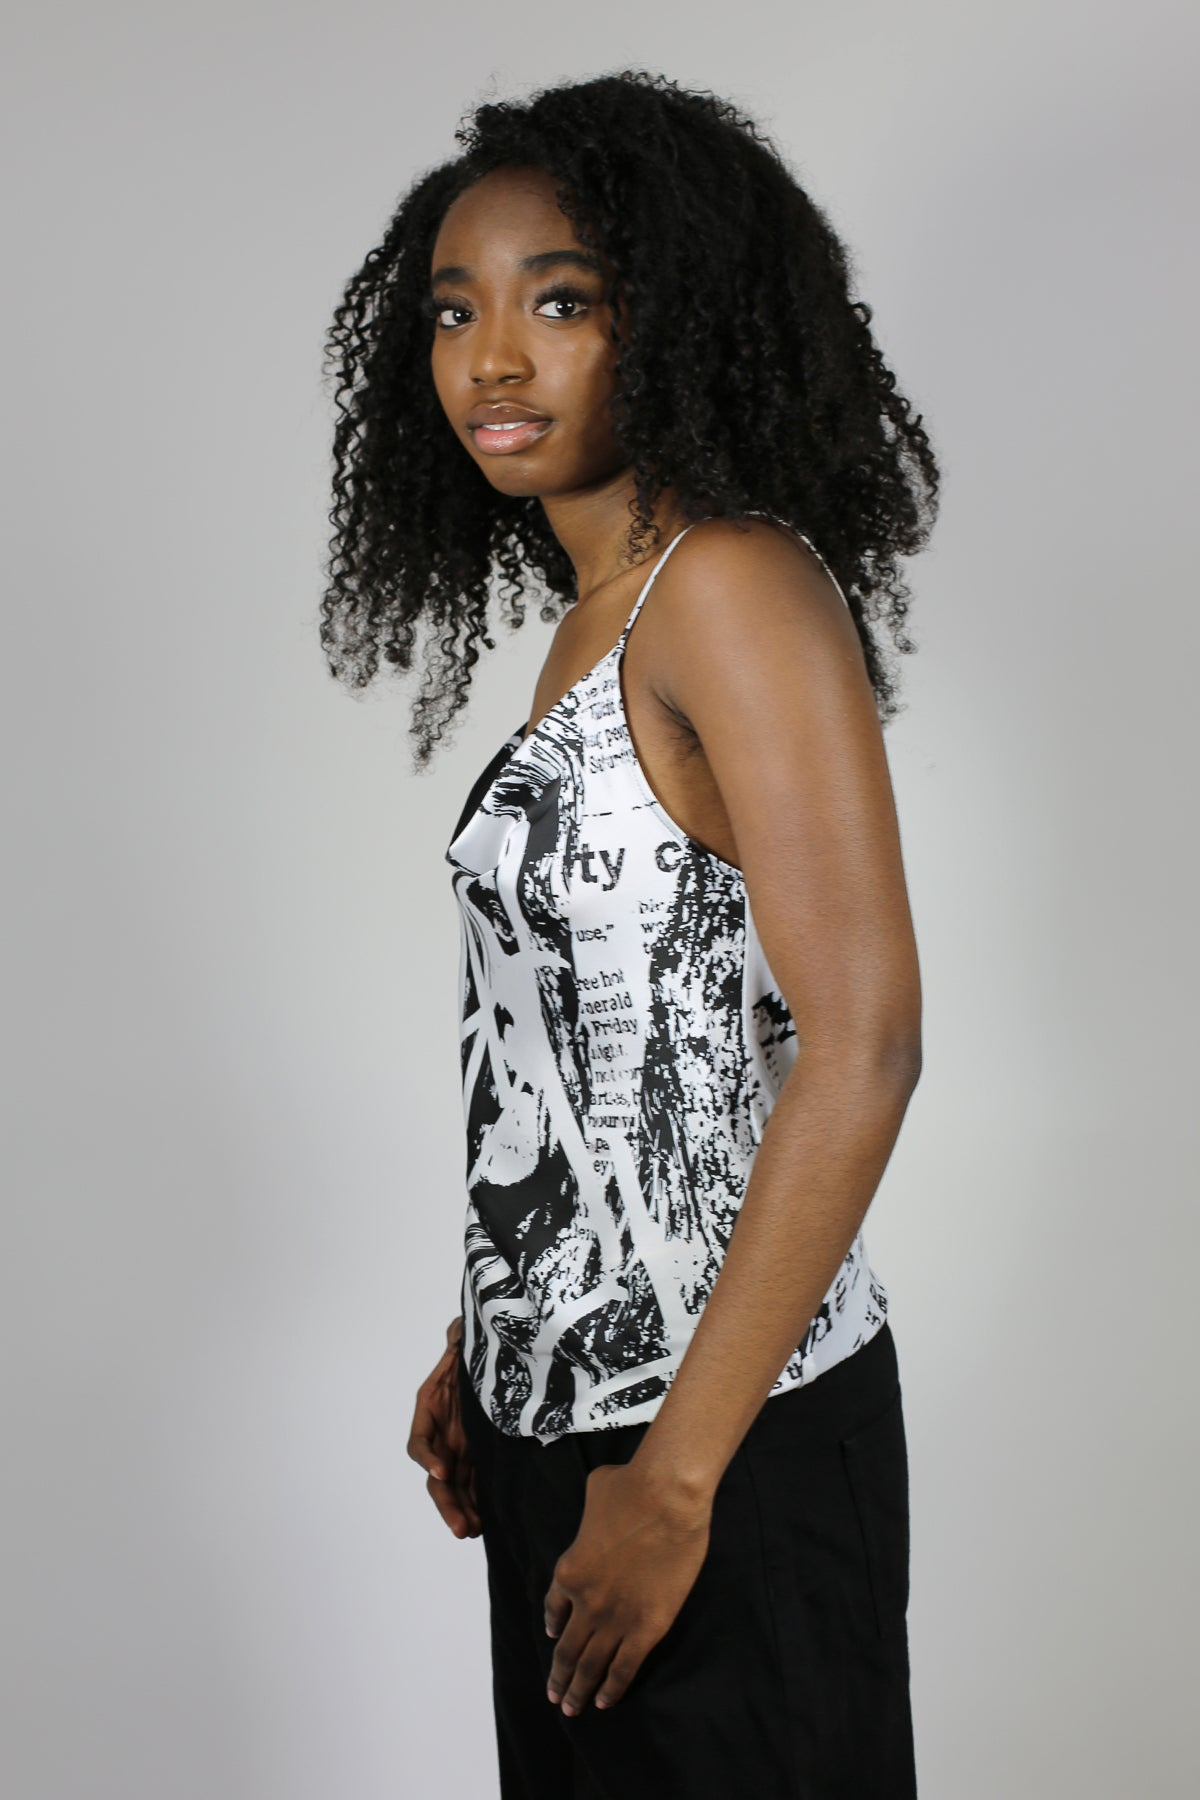 PRINTED SATIN SLIP TOP IN B&W PRINT